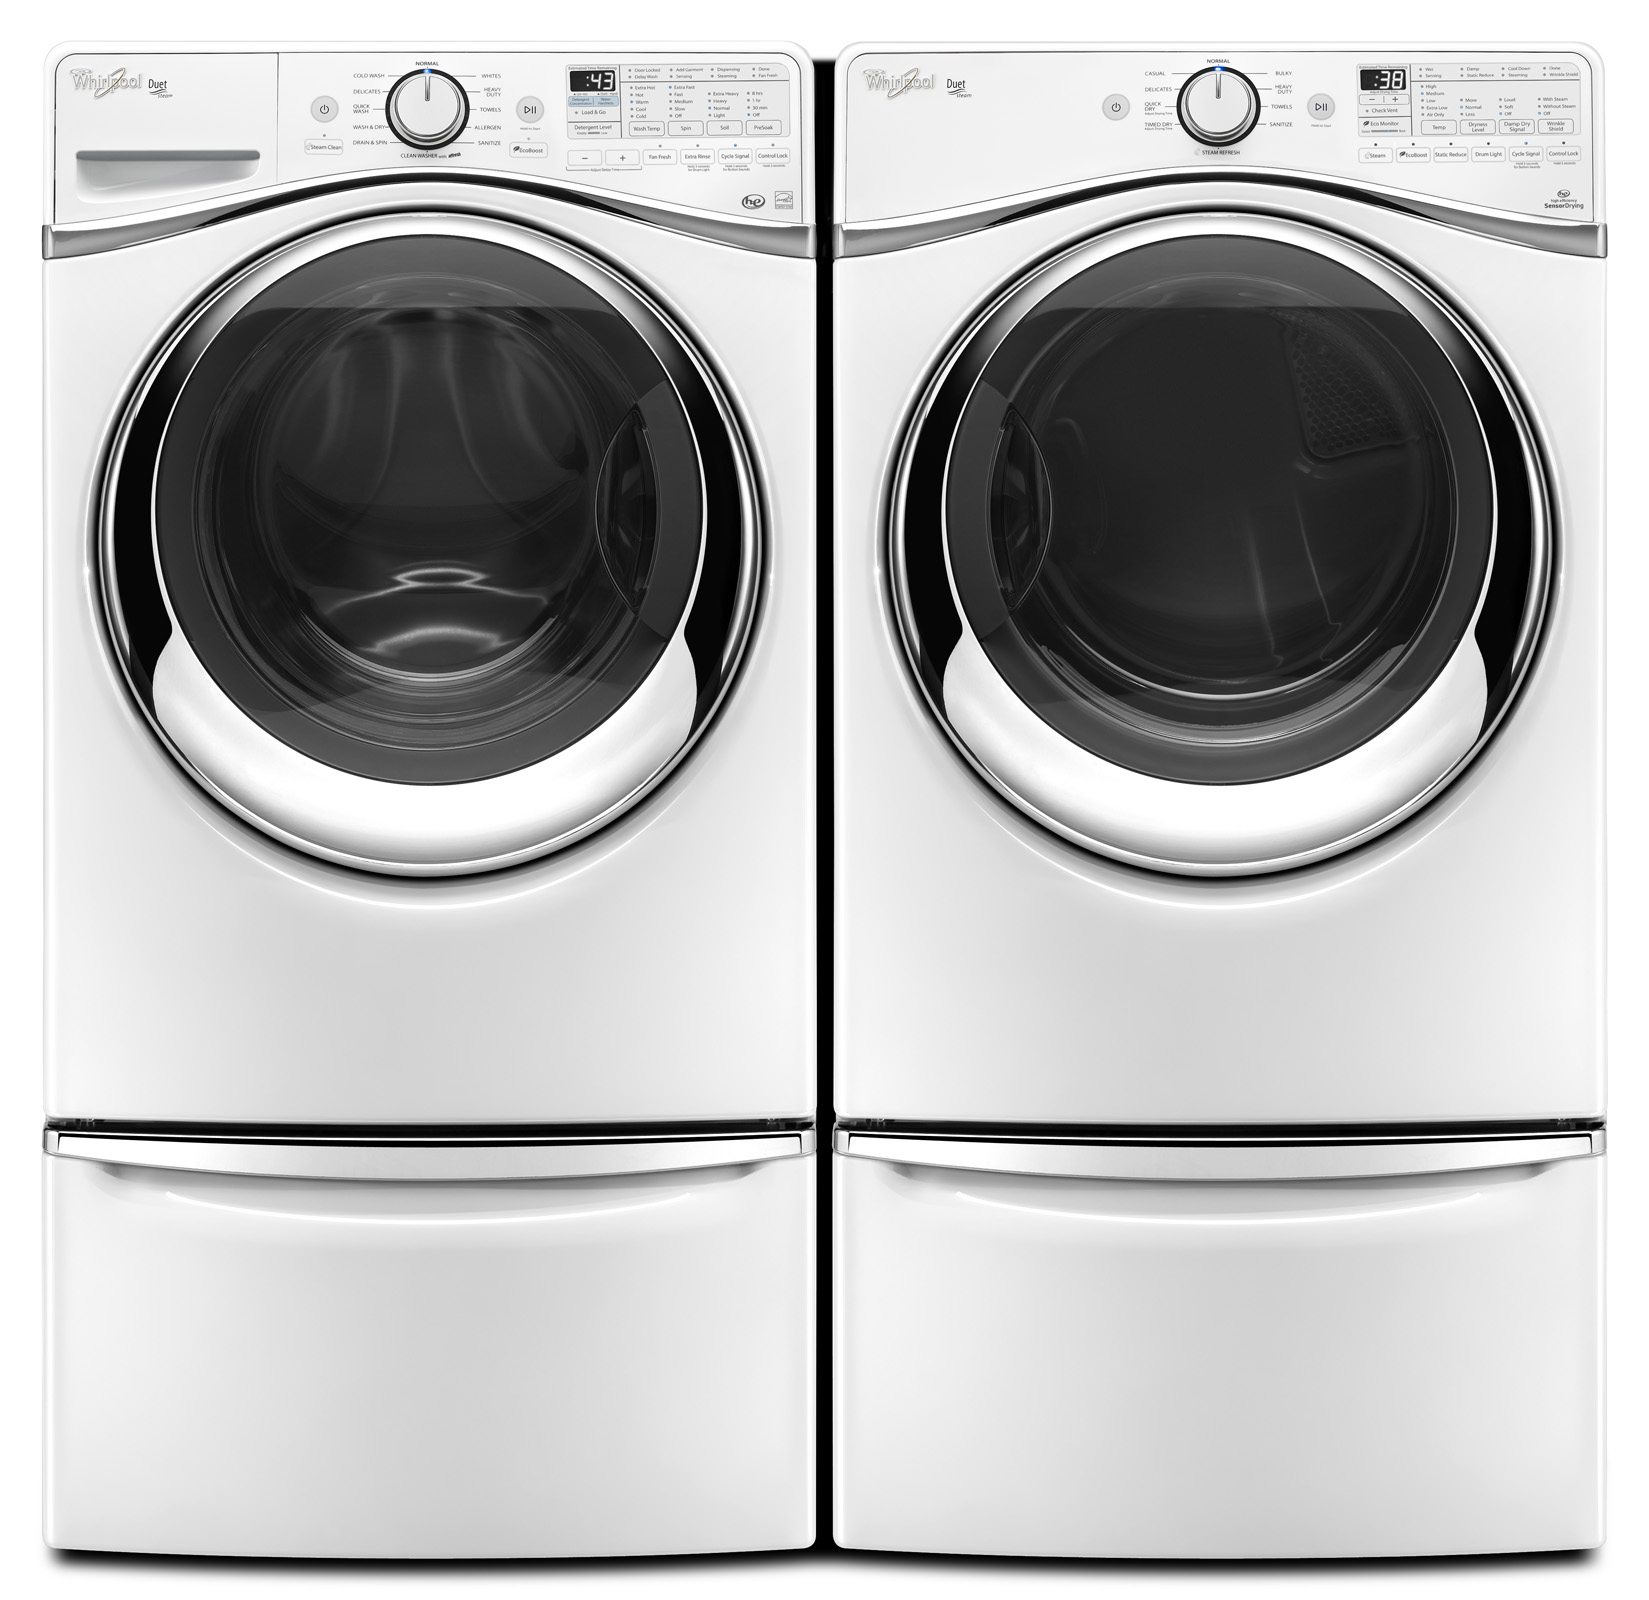 Whirlpool WFW97HEDW 4.5 cu. ft. Duet® Front-Load Washer w/ Load and Go System - White